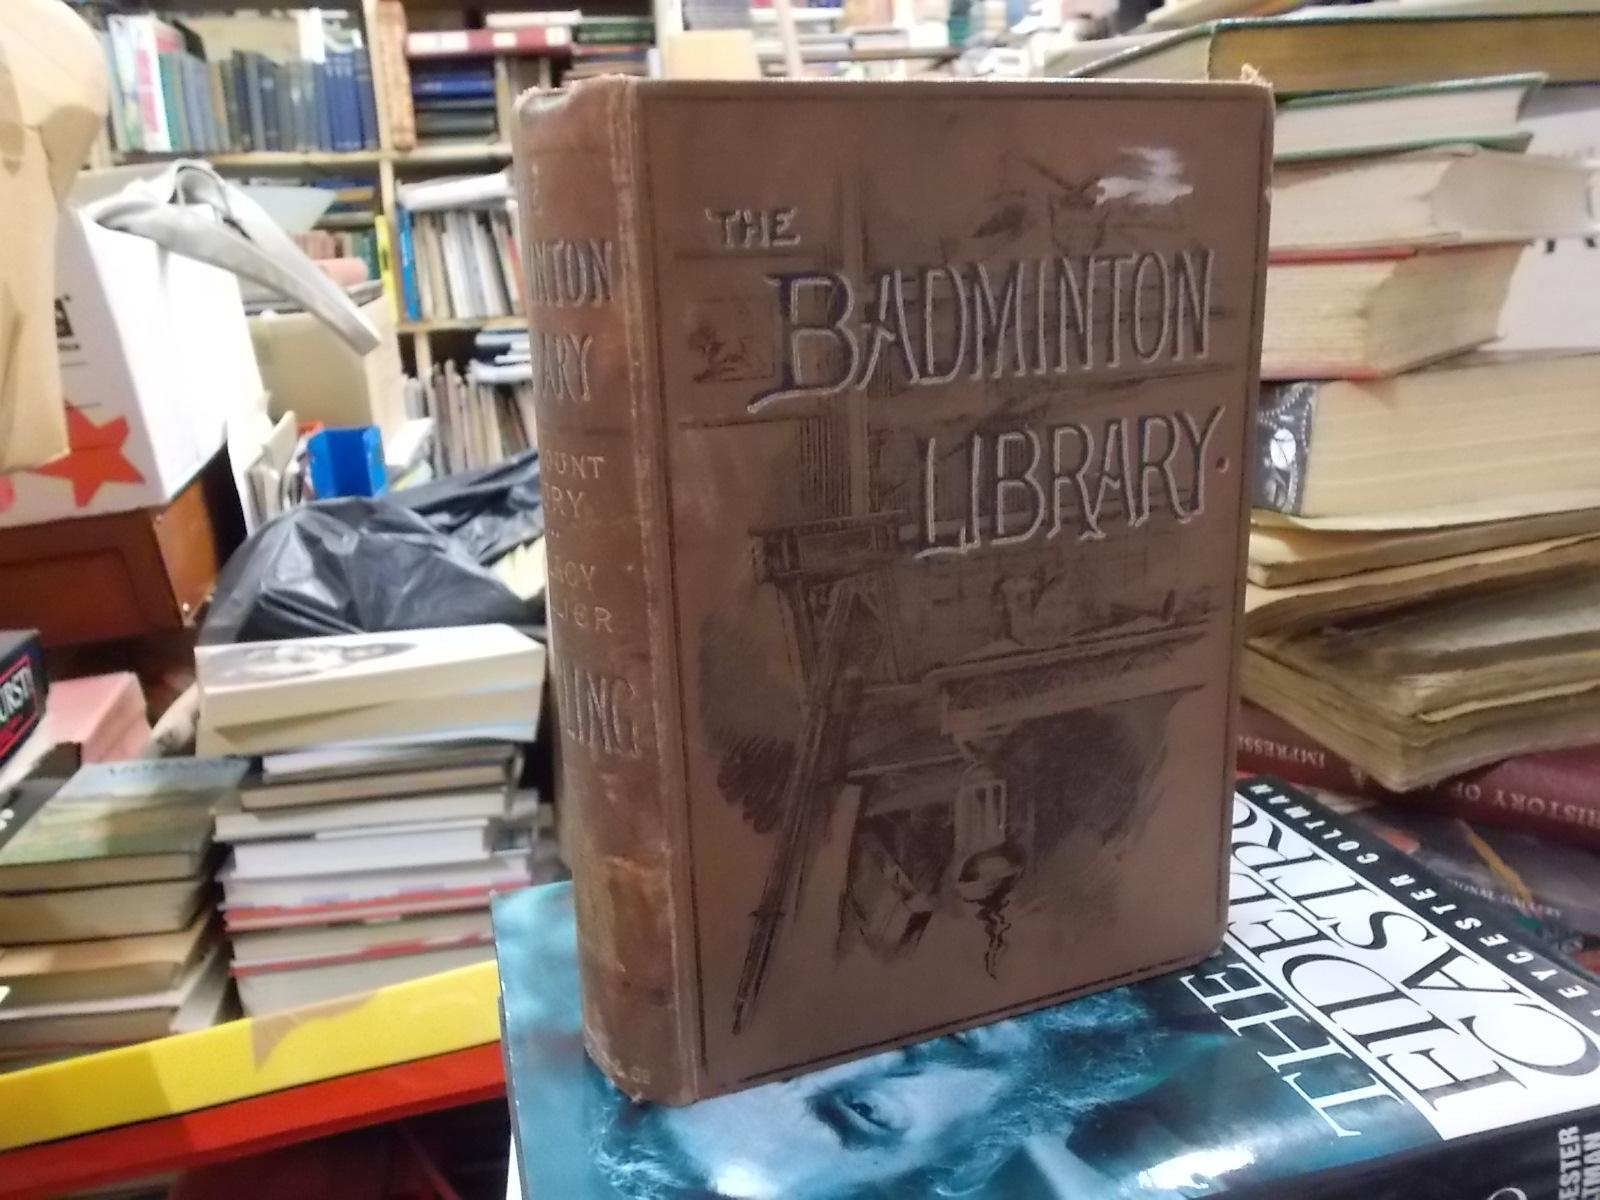 The Badminton Library Bury, Viscount and Hillier, Lacy Good Hardcover well worn decorative cloth. Slight foxing, wear by the spine on end paper. . Please see uploaded photos . For more information, please contact us.